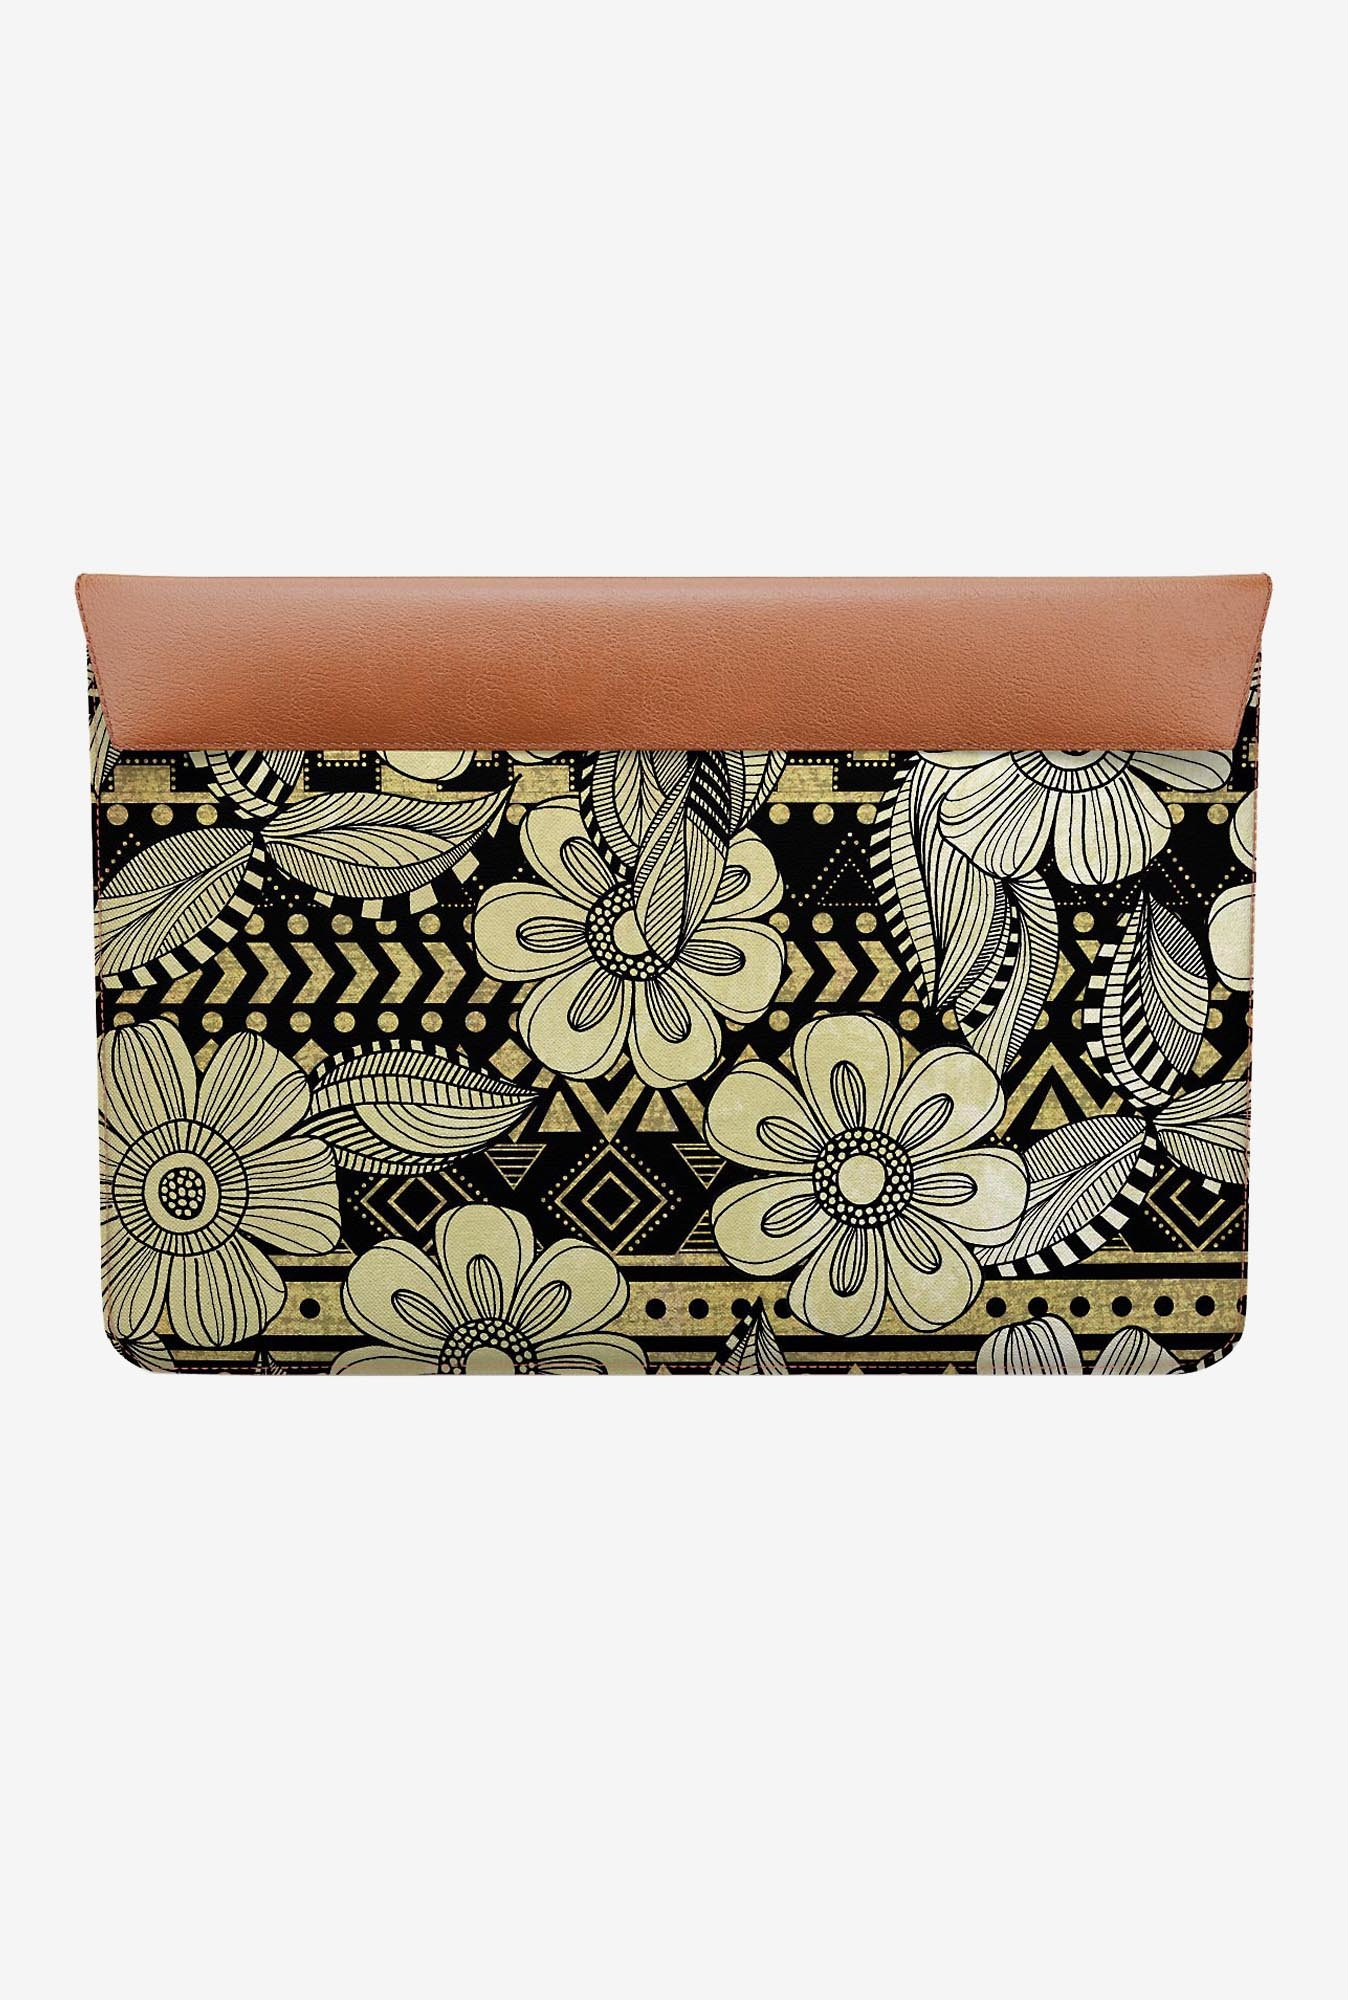 DailyObjects Floral Ink MacBook Air 11 Envelope Sleeve